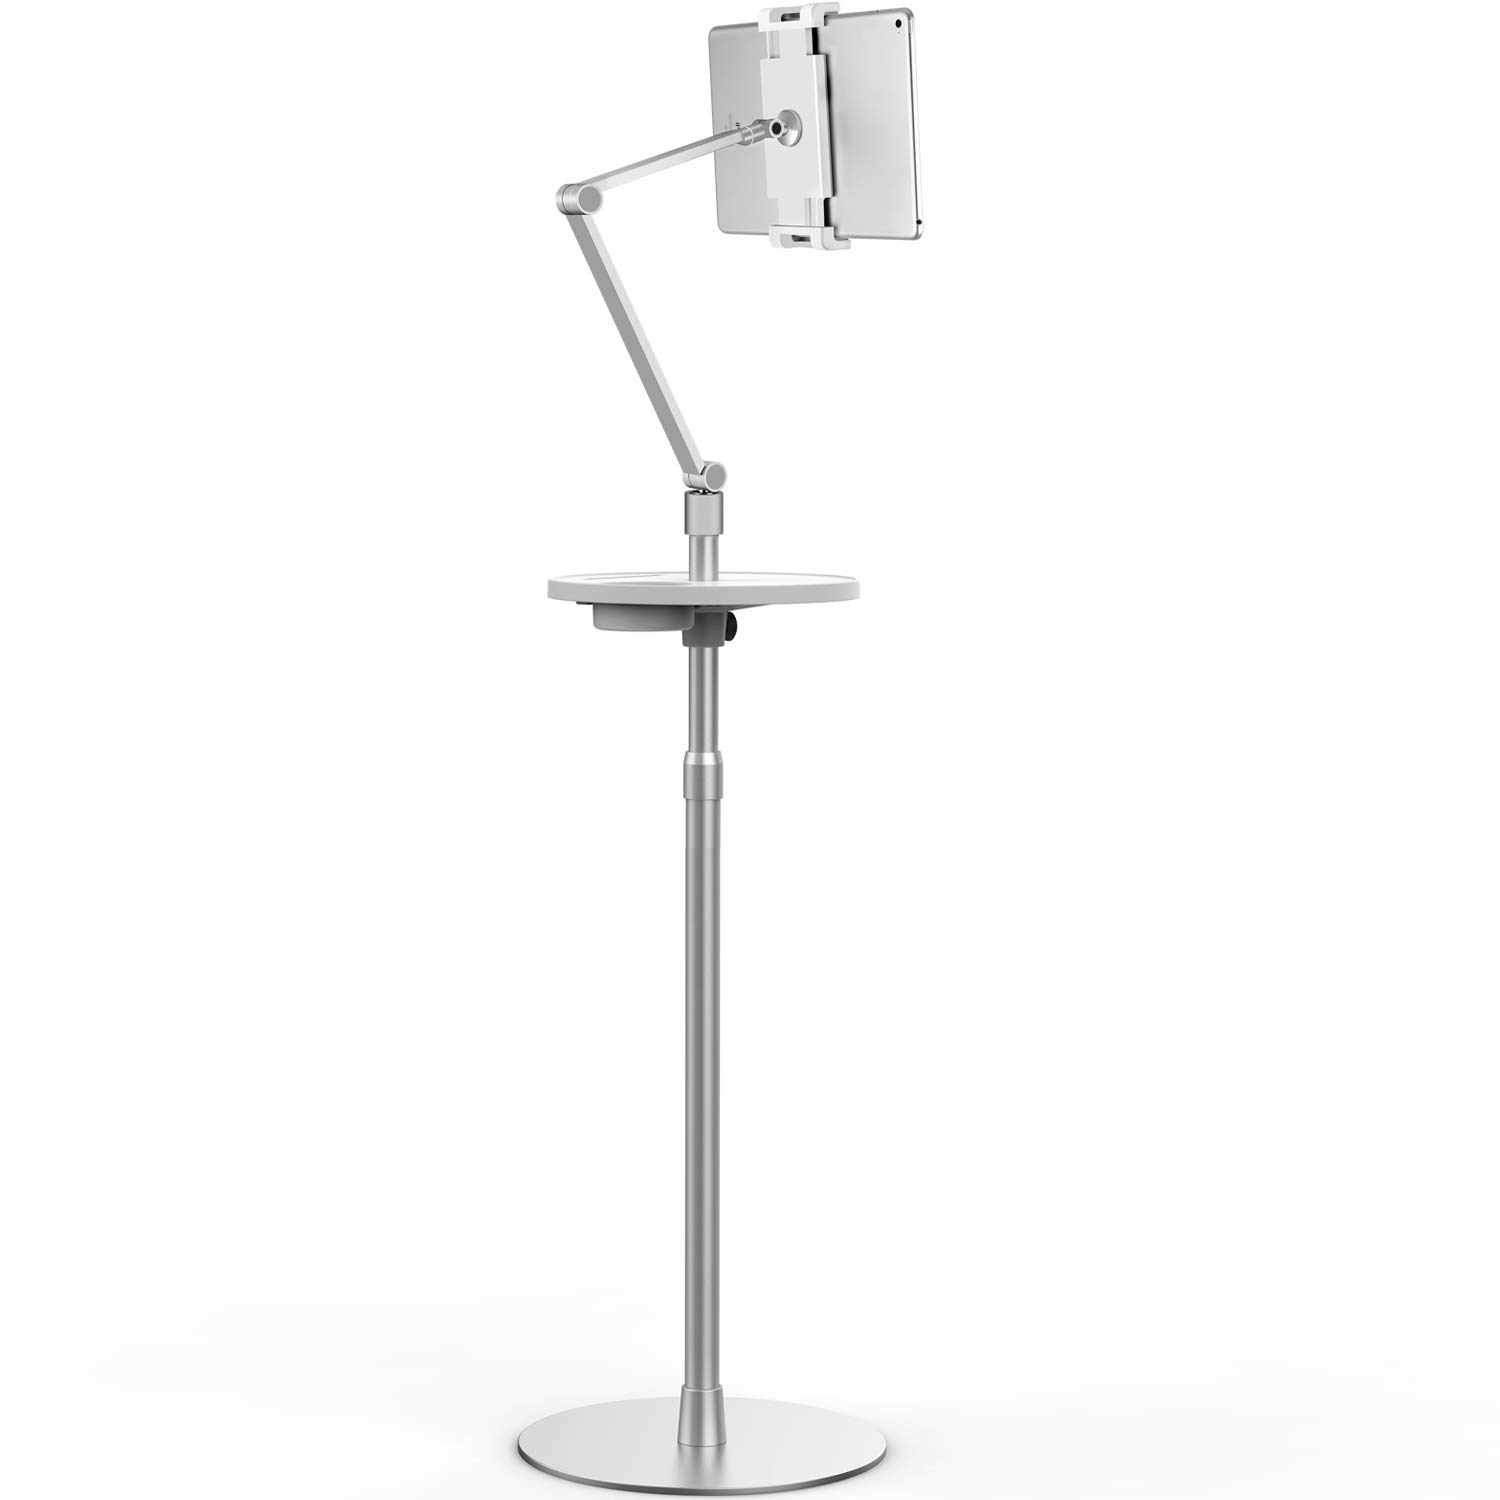 Viozon Tablet Floor Stand, Holder for iPad,Applicable to3.5~6inch Smart Phone and 7~10 inch Tablet Such as iPad, iPhone X, iPad Pro,iPad Mini, iPad Air 1-2 / iPad 2-4 (Silver)